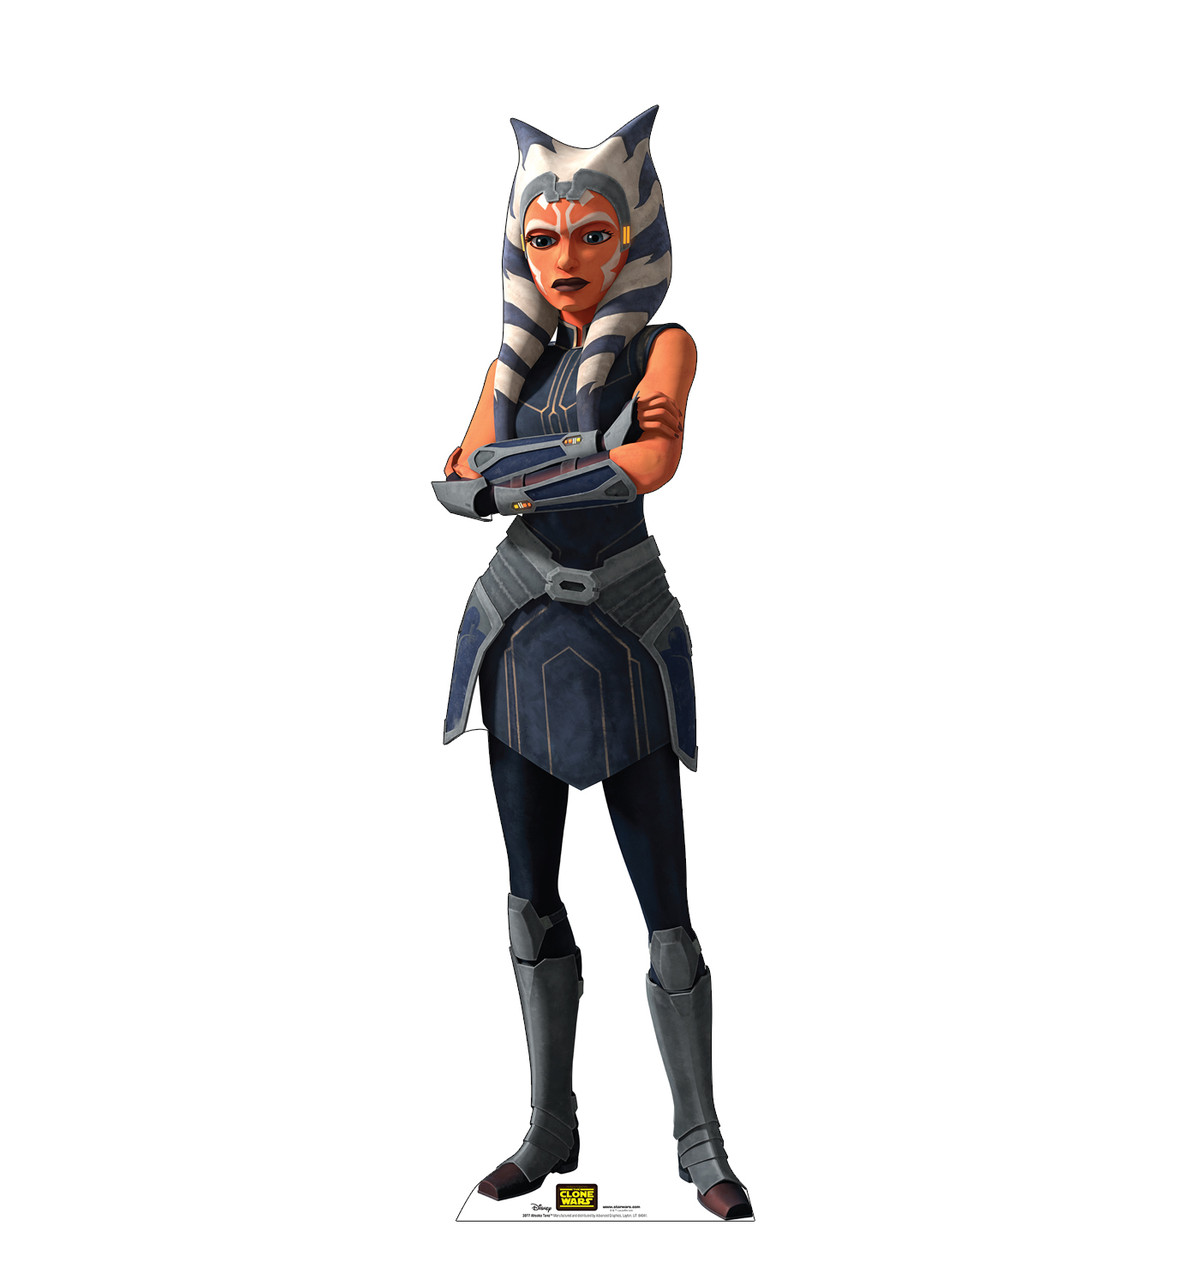 Life-size cardboard standee of the character Ahsoka Tano from Clone Wars Season 7.